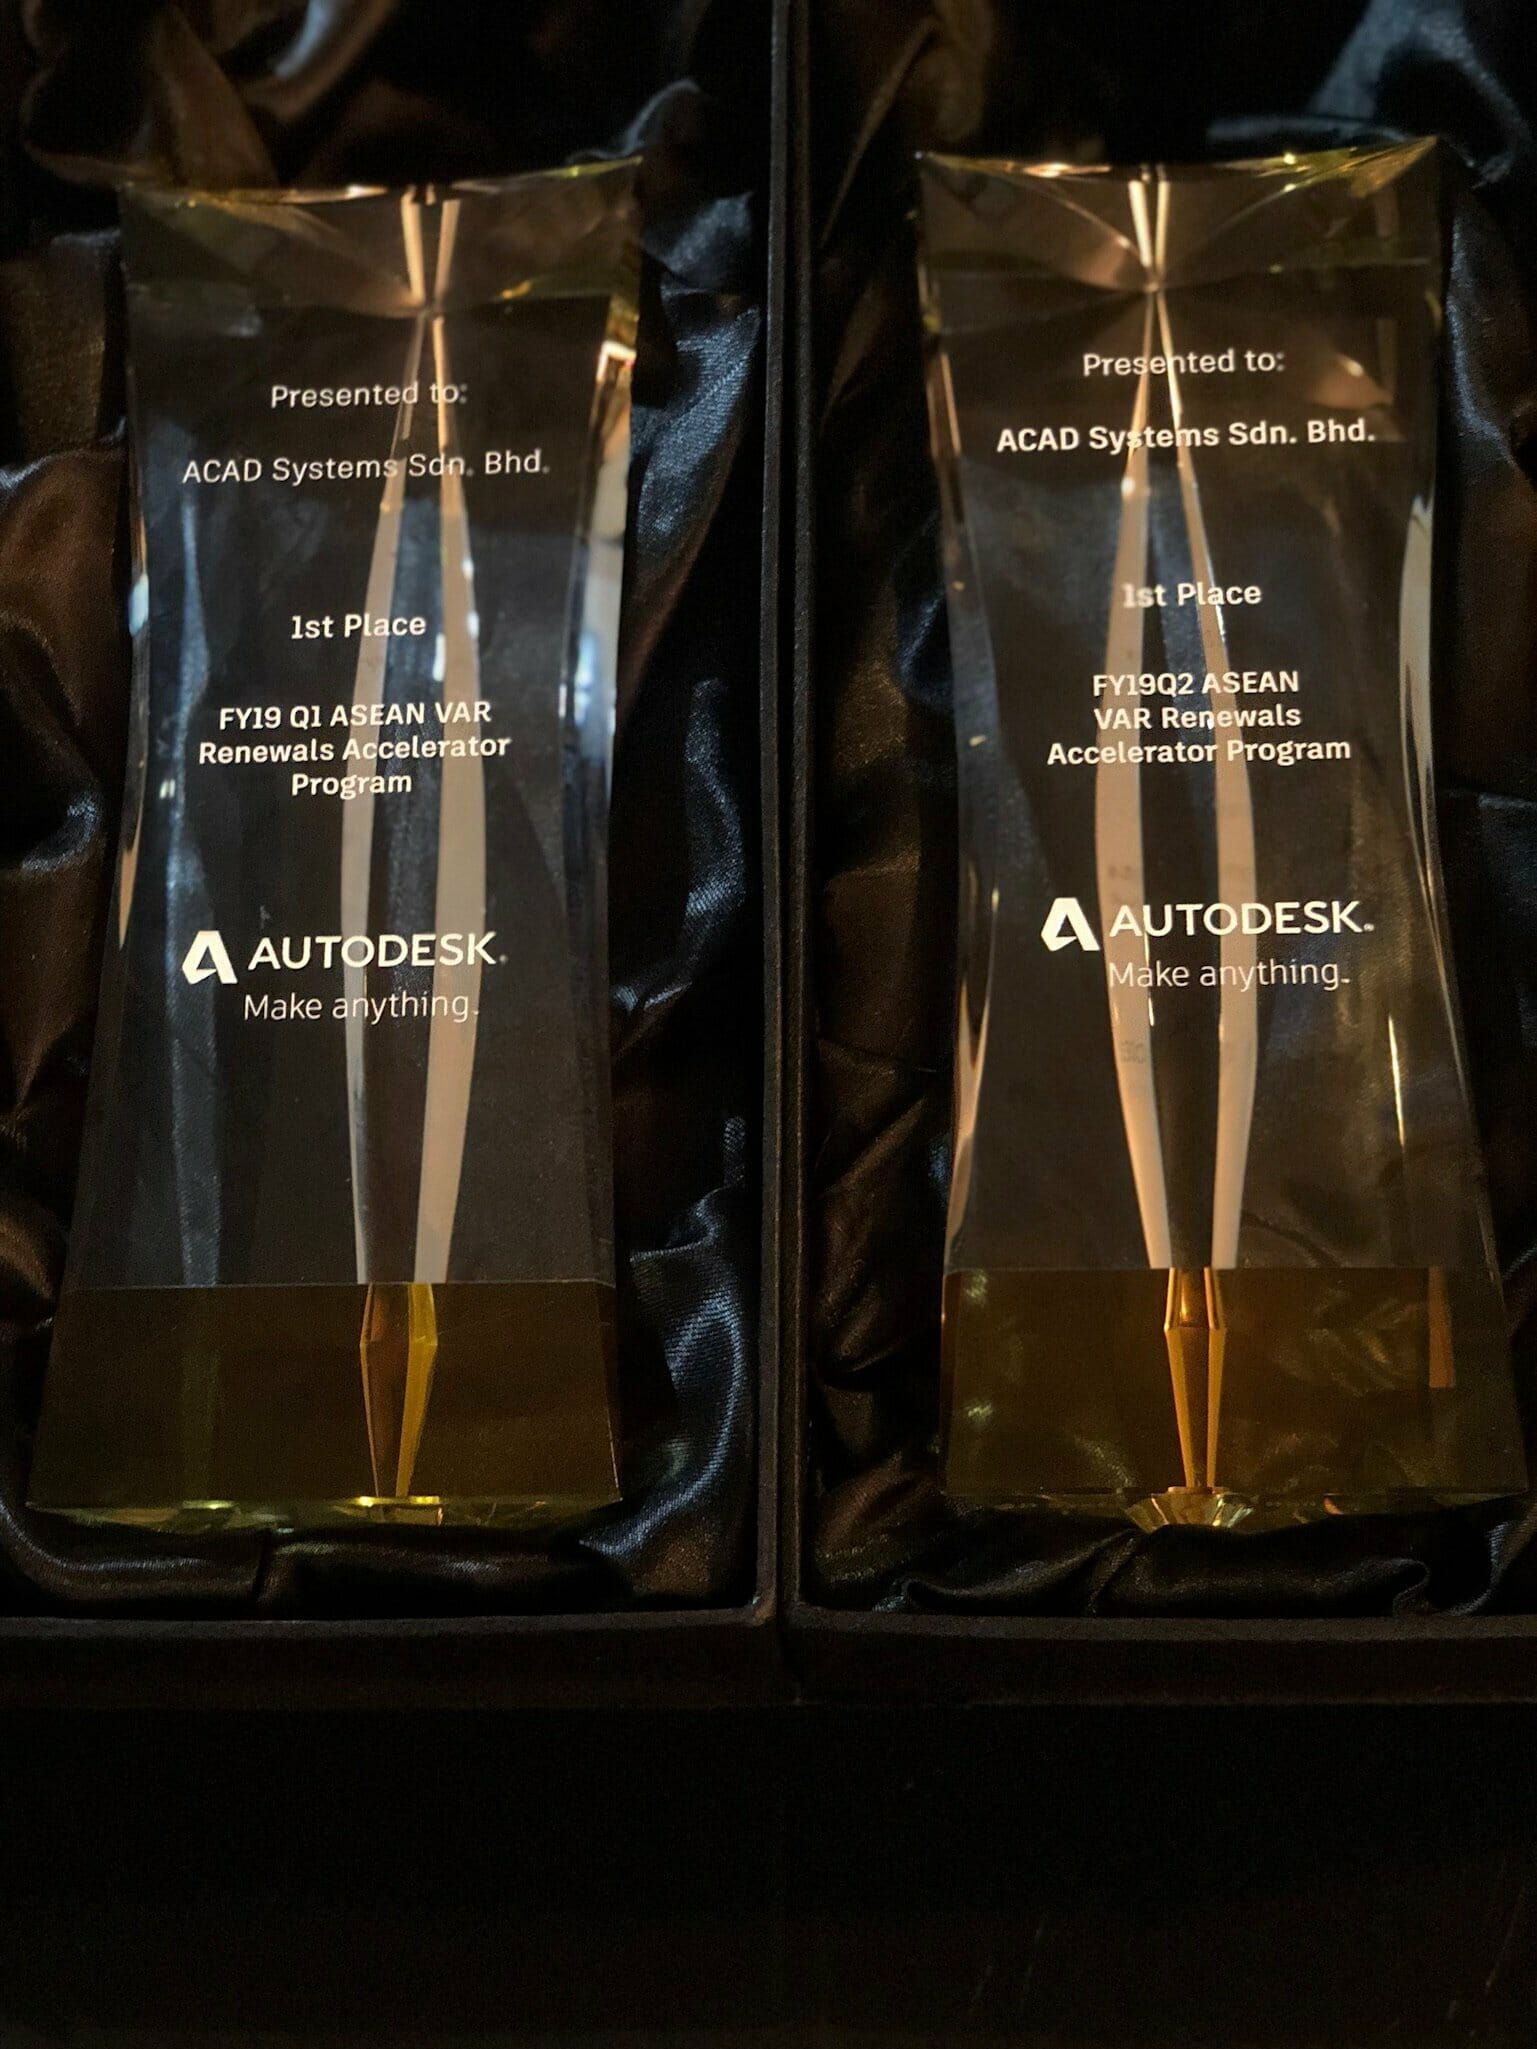 Autodesk Subscription Renewal Award for Acad Systems FY19 Q1 and Q2